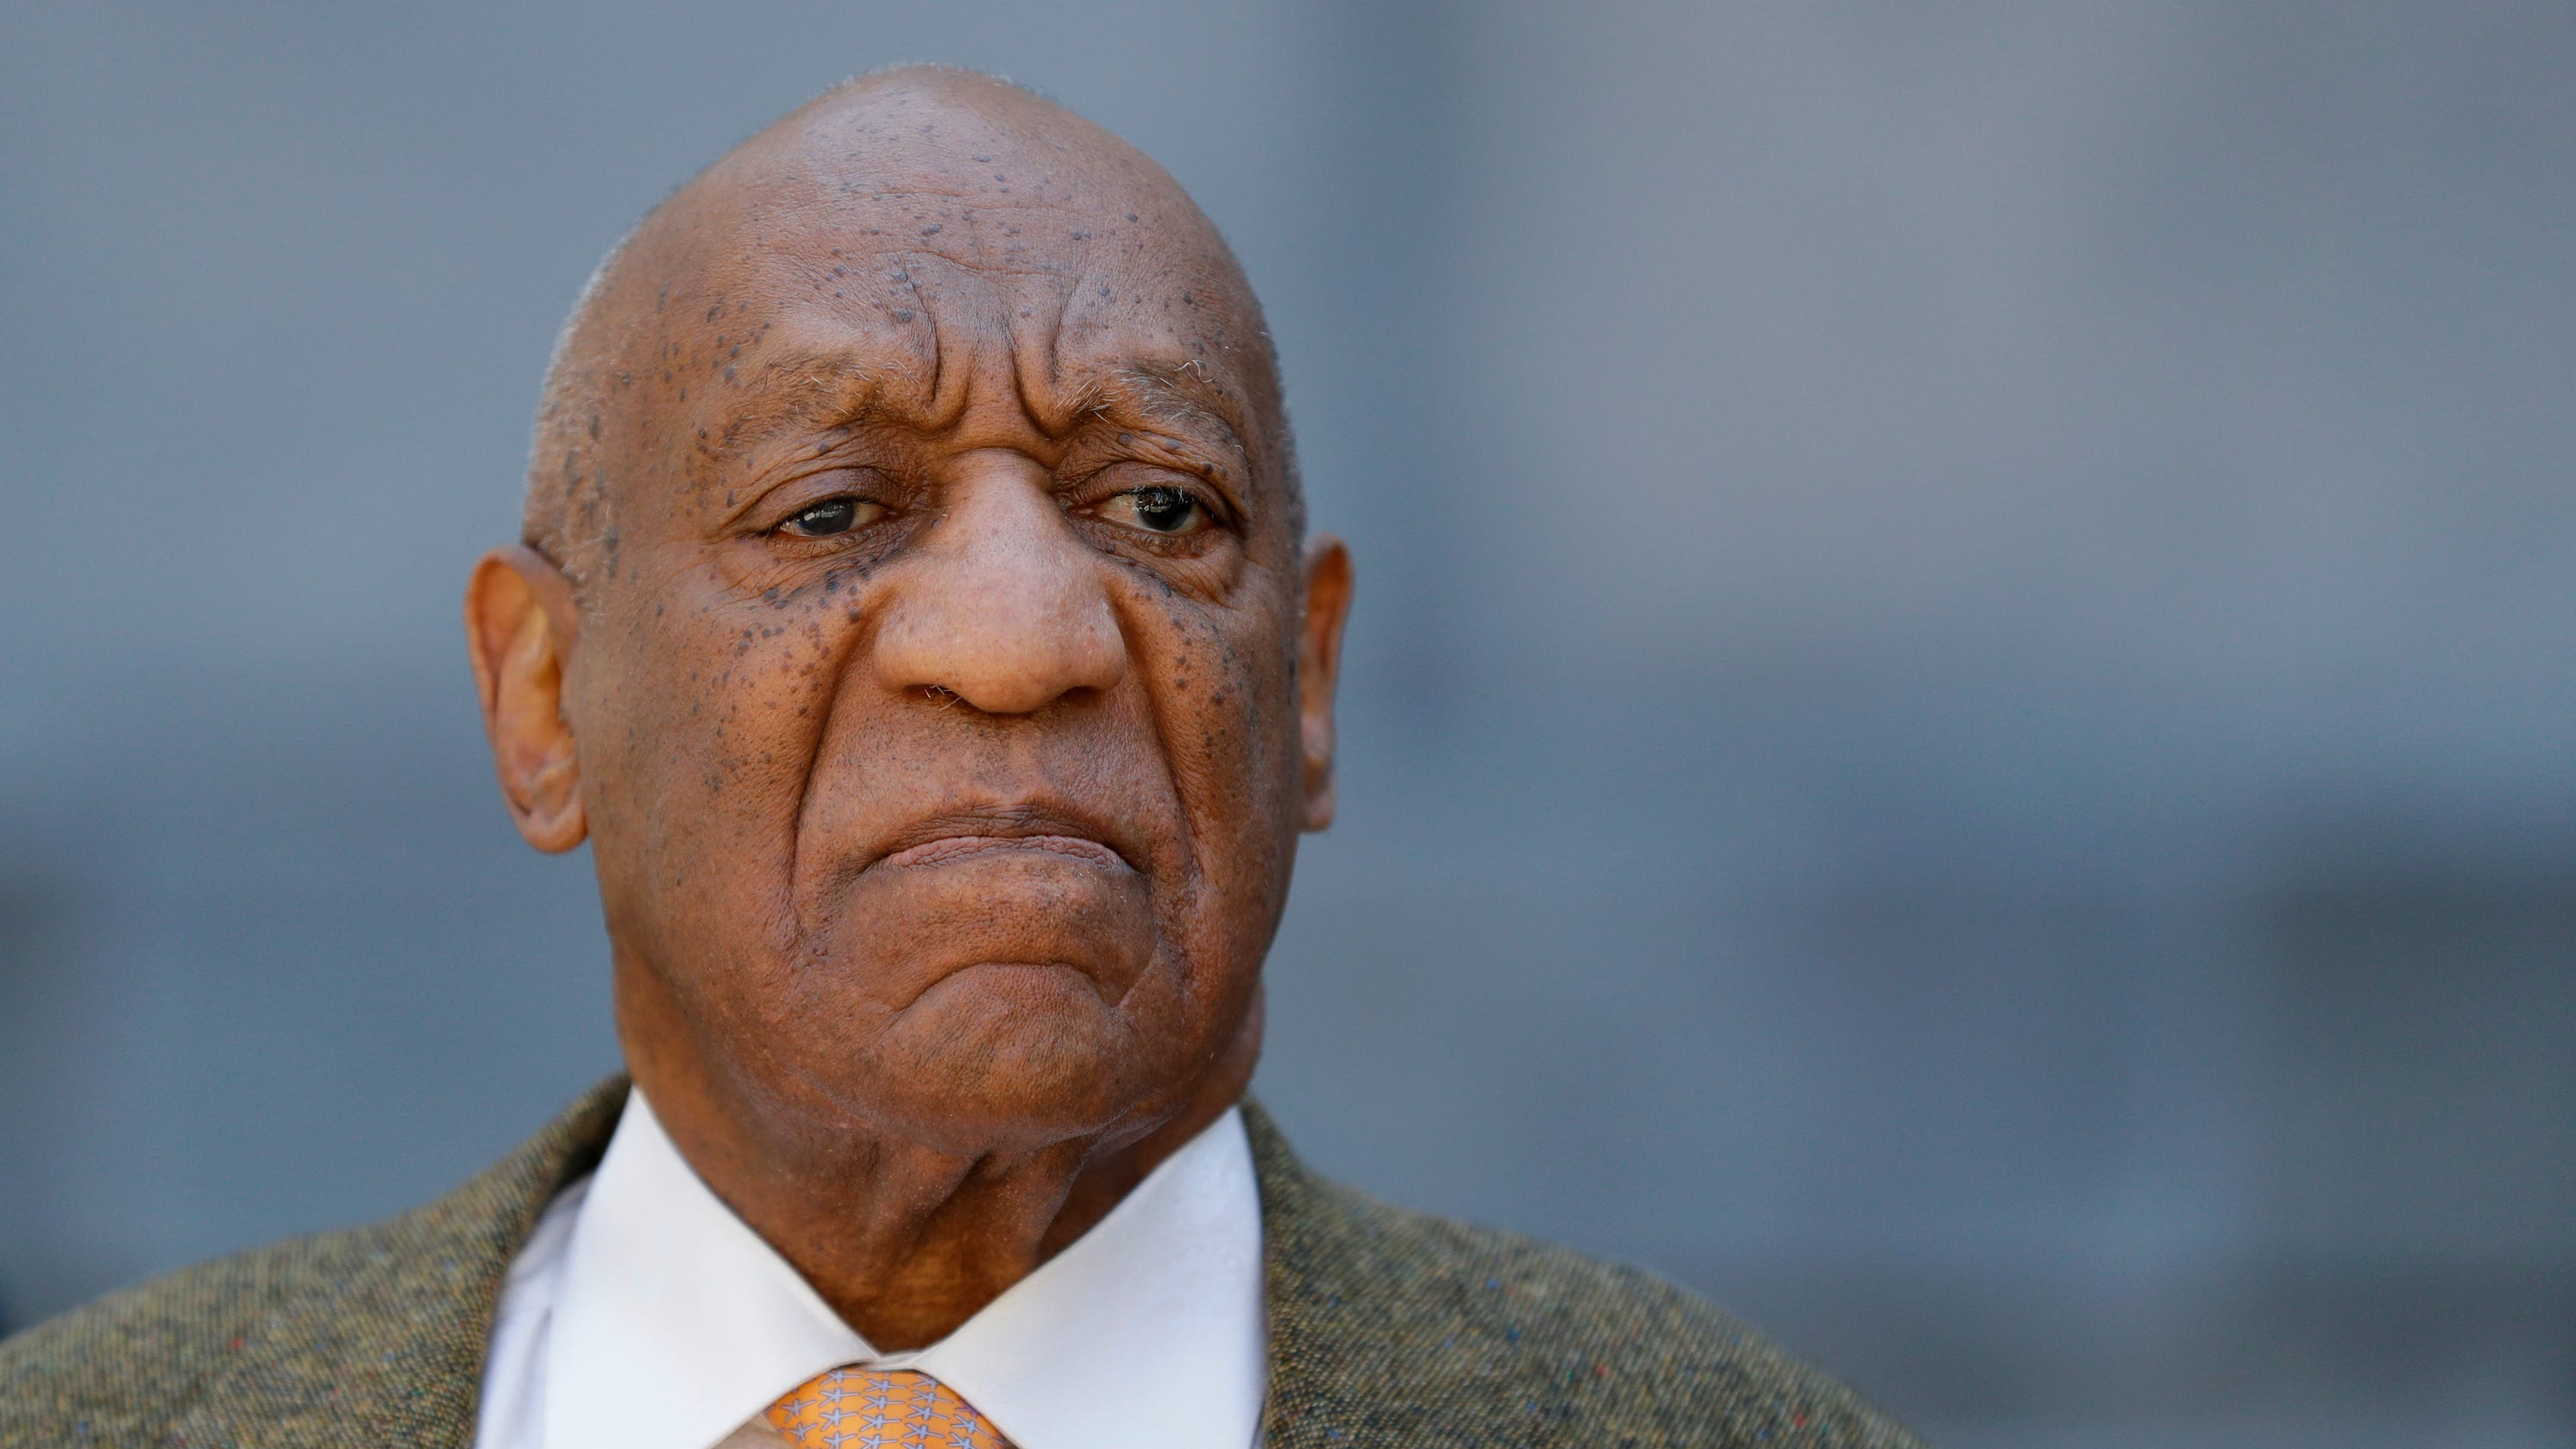 Bill Cosby is 'extremely popular' in prison, 'looks amazing' after weight loss, rep says